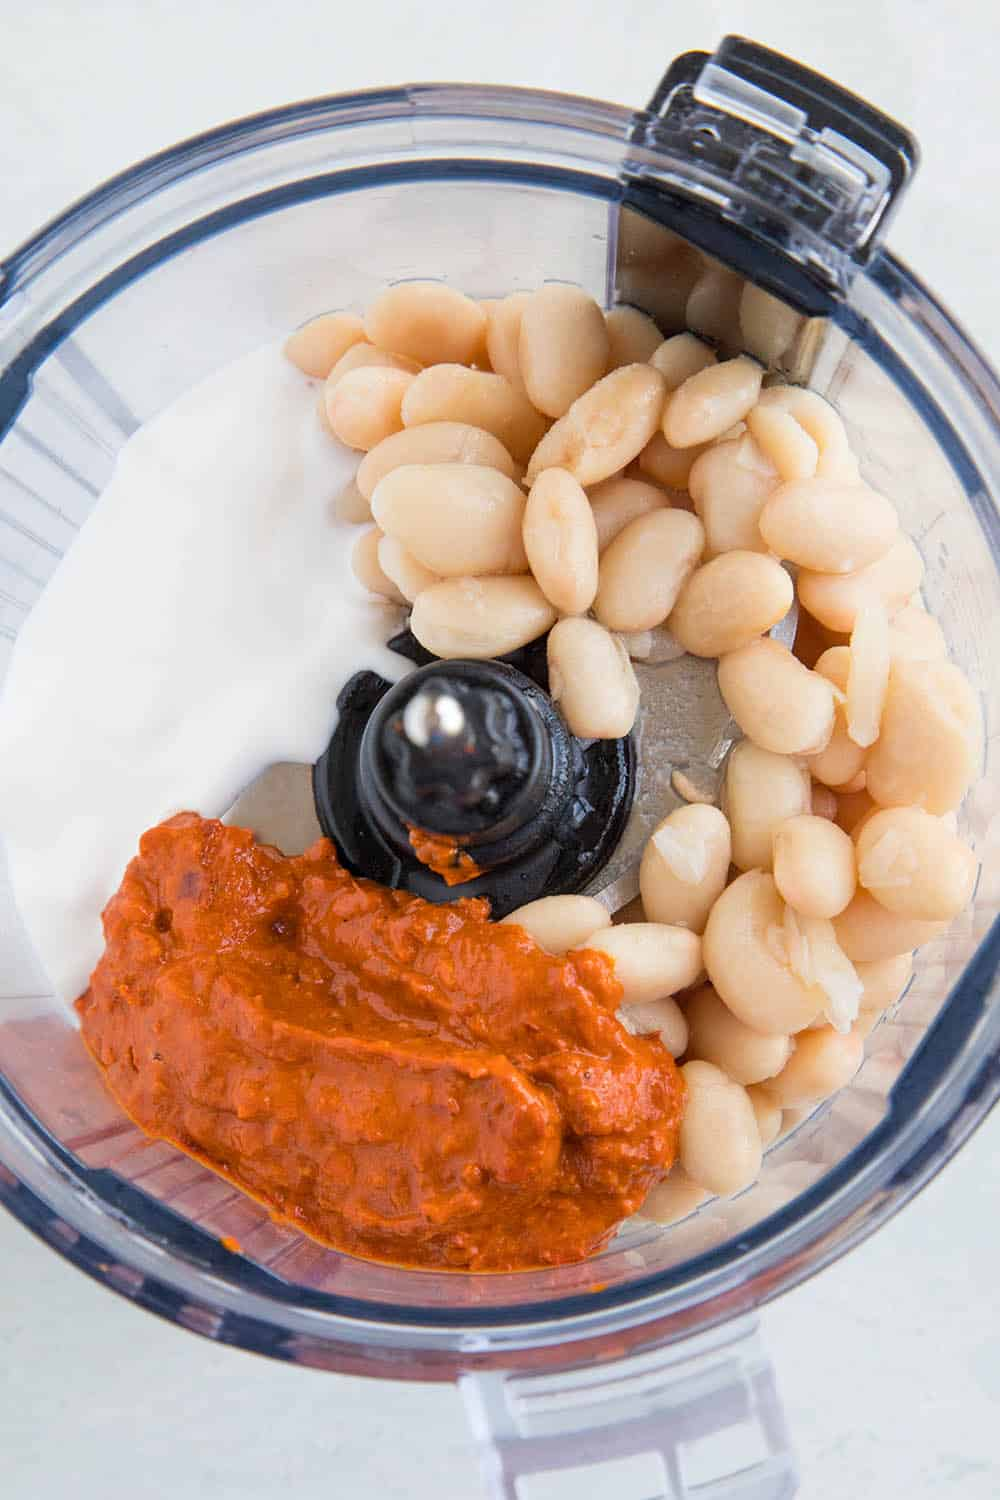 Ingredients for my Creamy White Bean Dip with Harissa recipe in a food processor